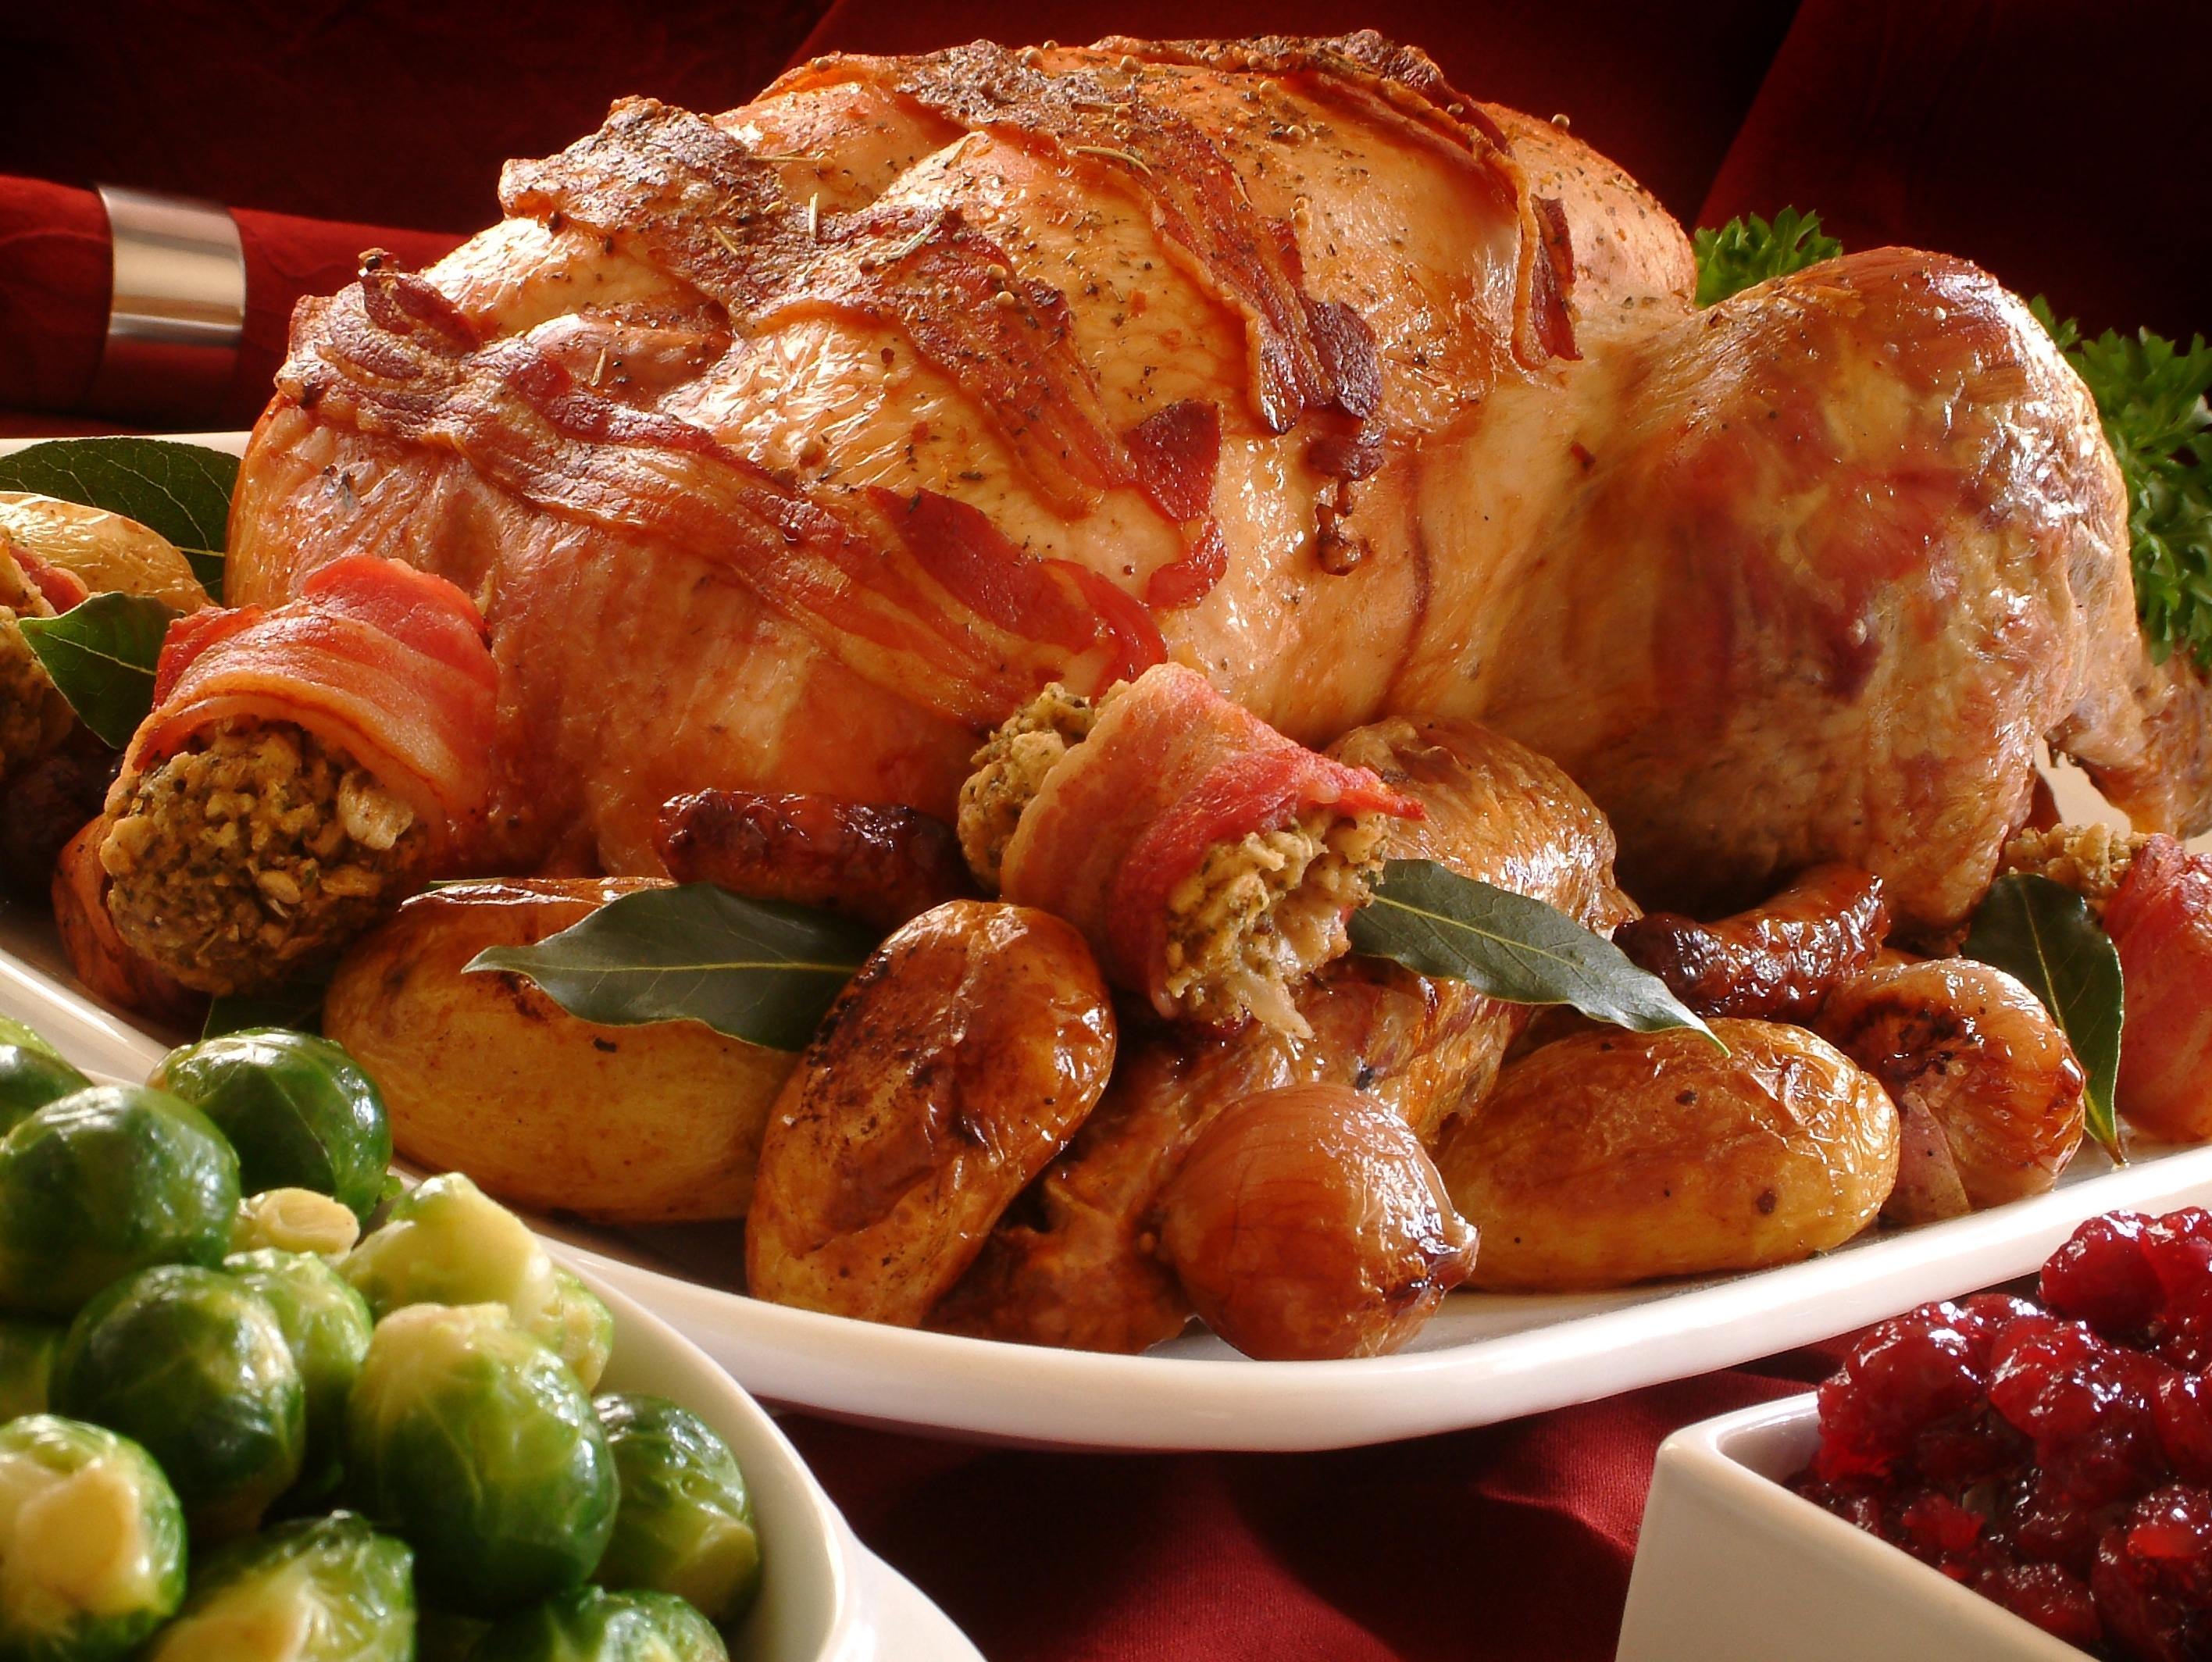 MASTER THE EVENT: PLANNING THE PERFECT THANKSGIVING DINNER